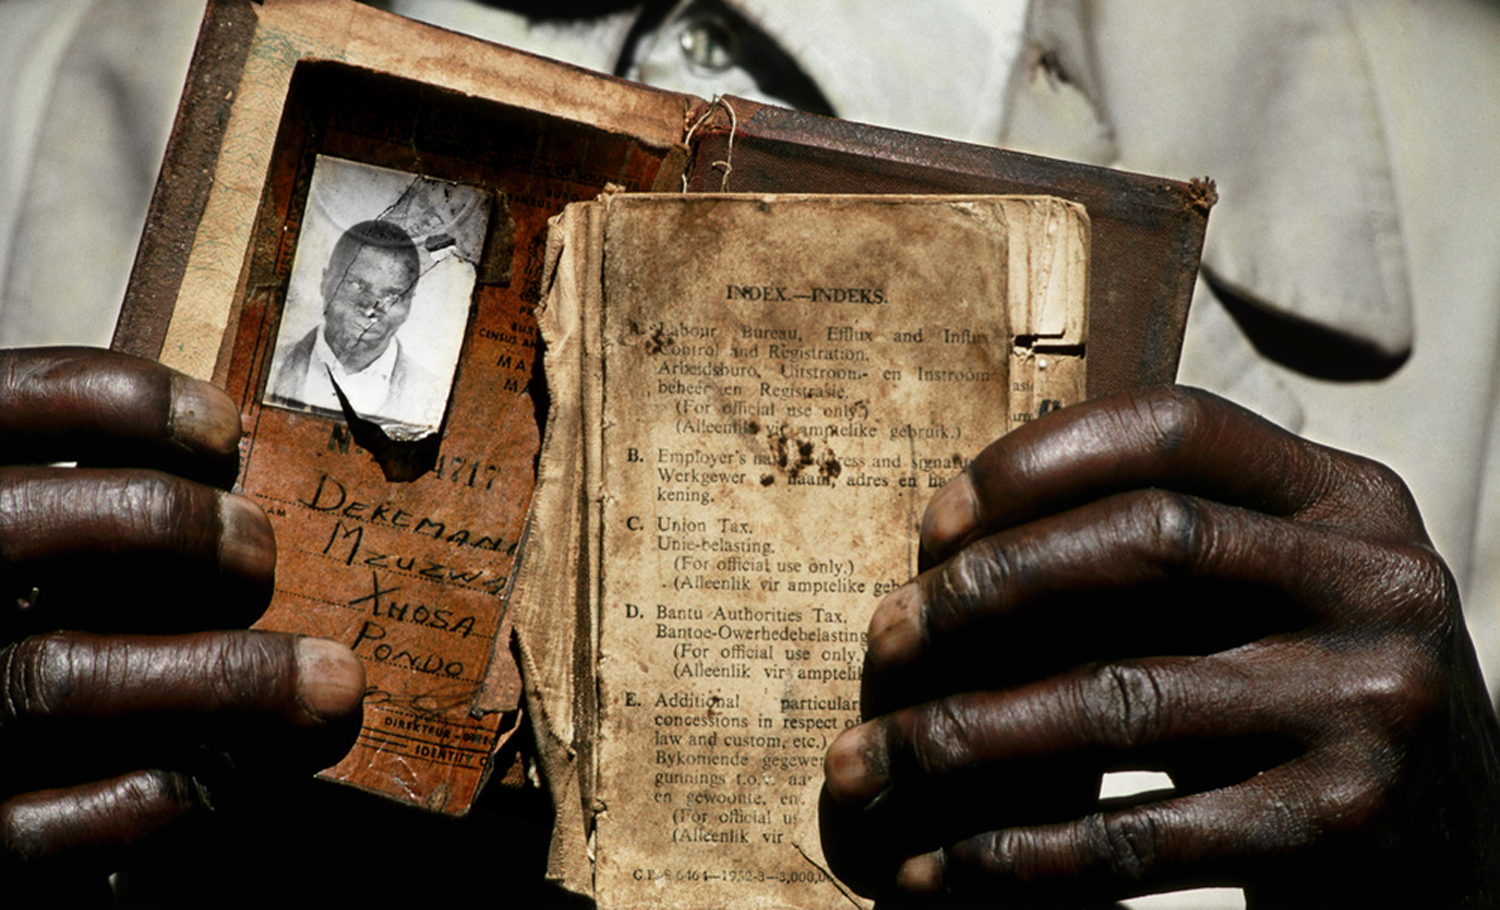 Under the tenants of apartheid, every South African of color was stripped of South African citizenship, obligated to carry a passbook at all times and relegated to their tribal identities — all in order to ensure governance at the hands of a white minority. 1994.